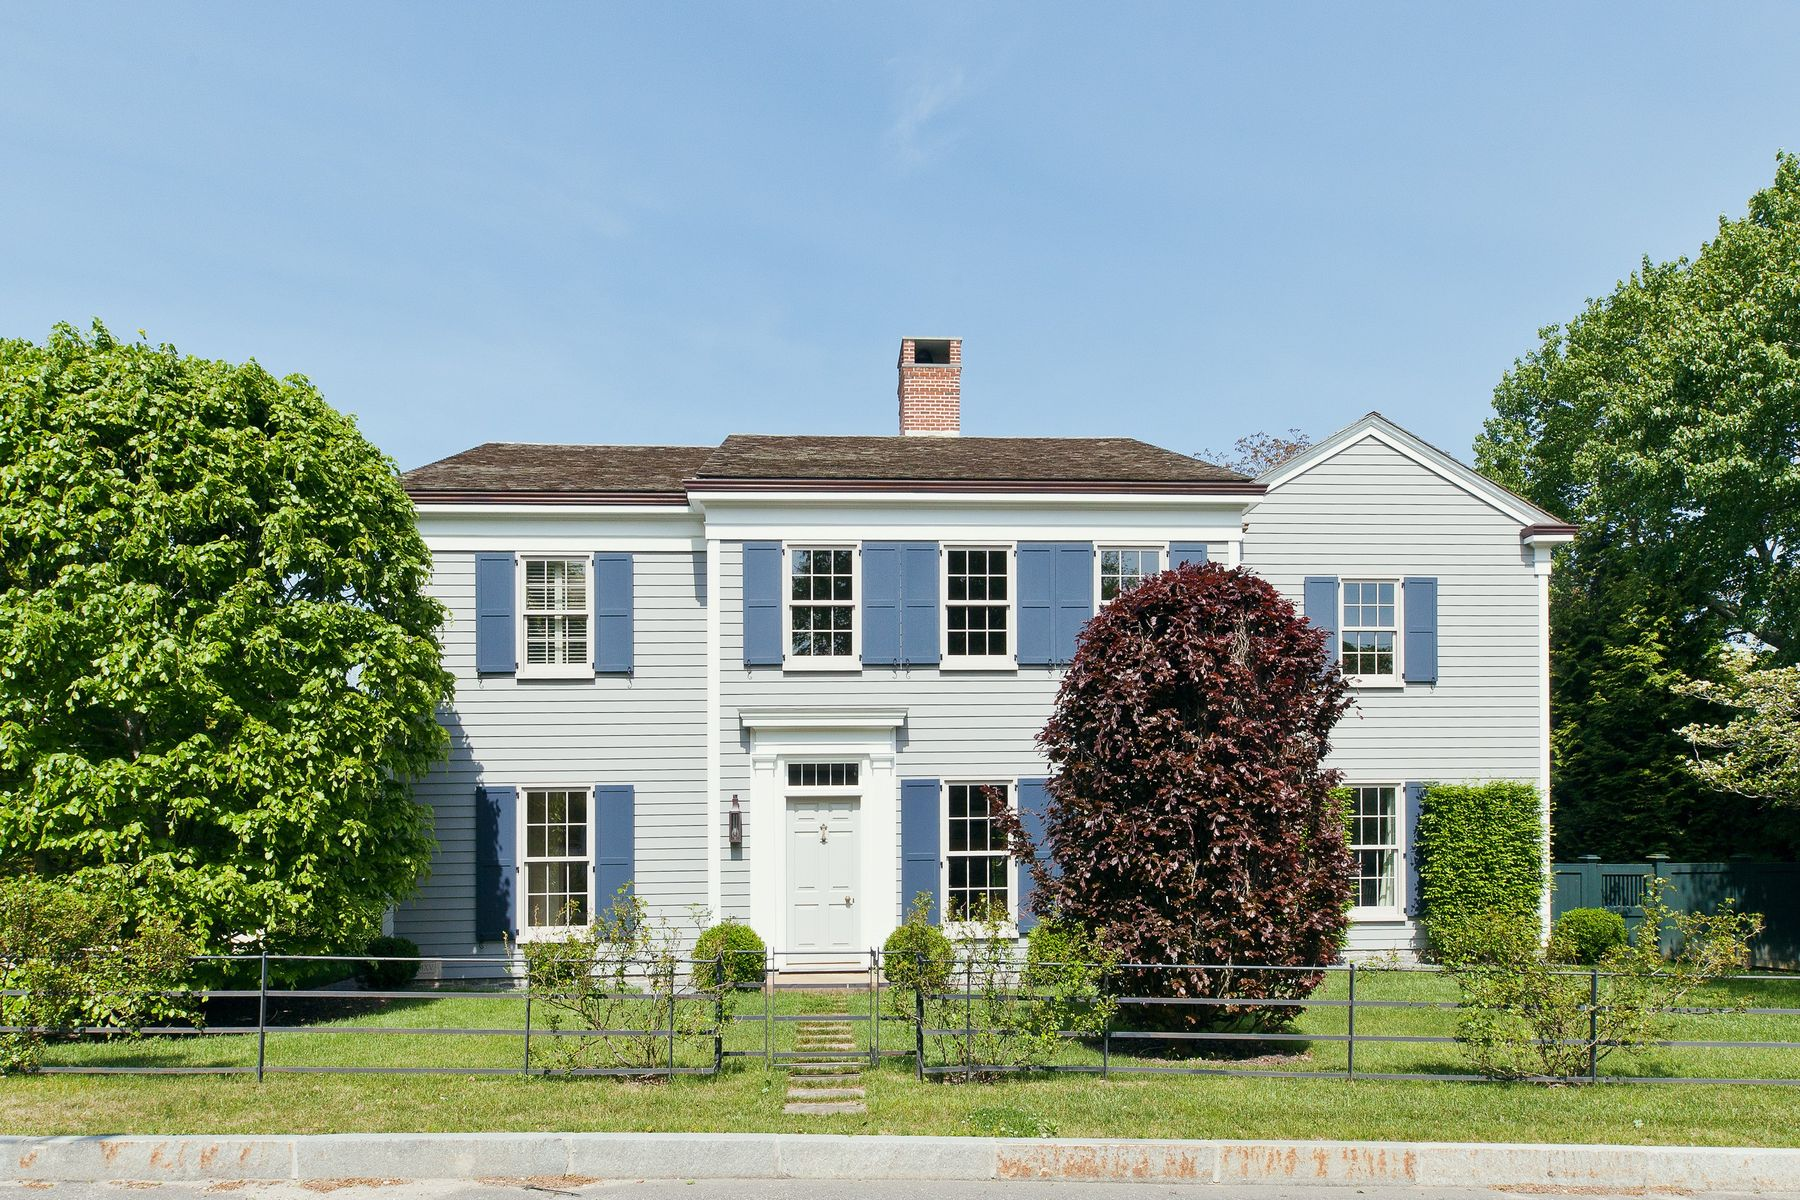 Single Family Homes for Active at Luxury Reimagined in Sag Harbor 43 Suffolk Street Sag Harbor, New York 11963 United States